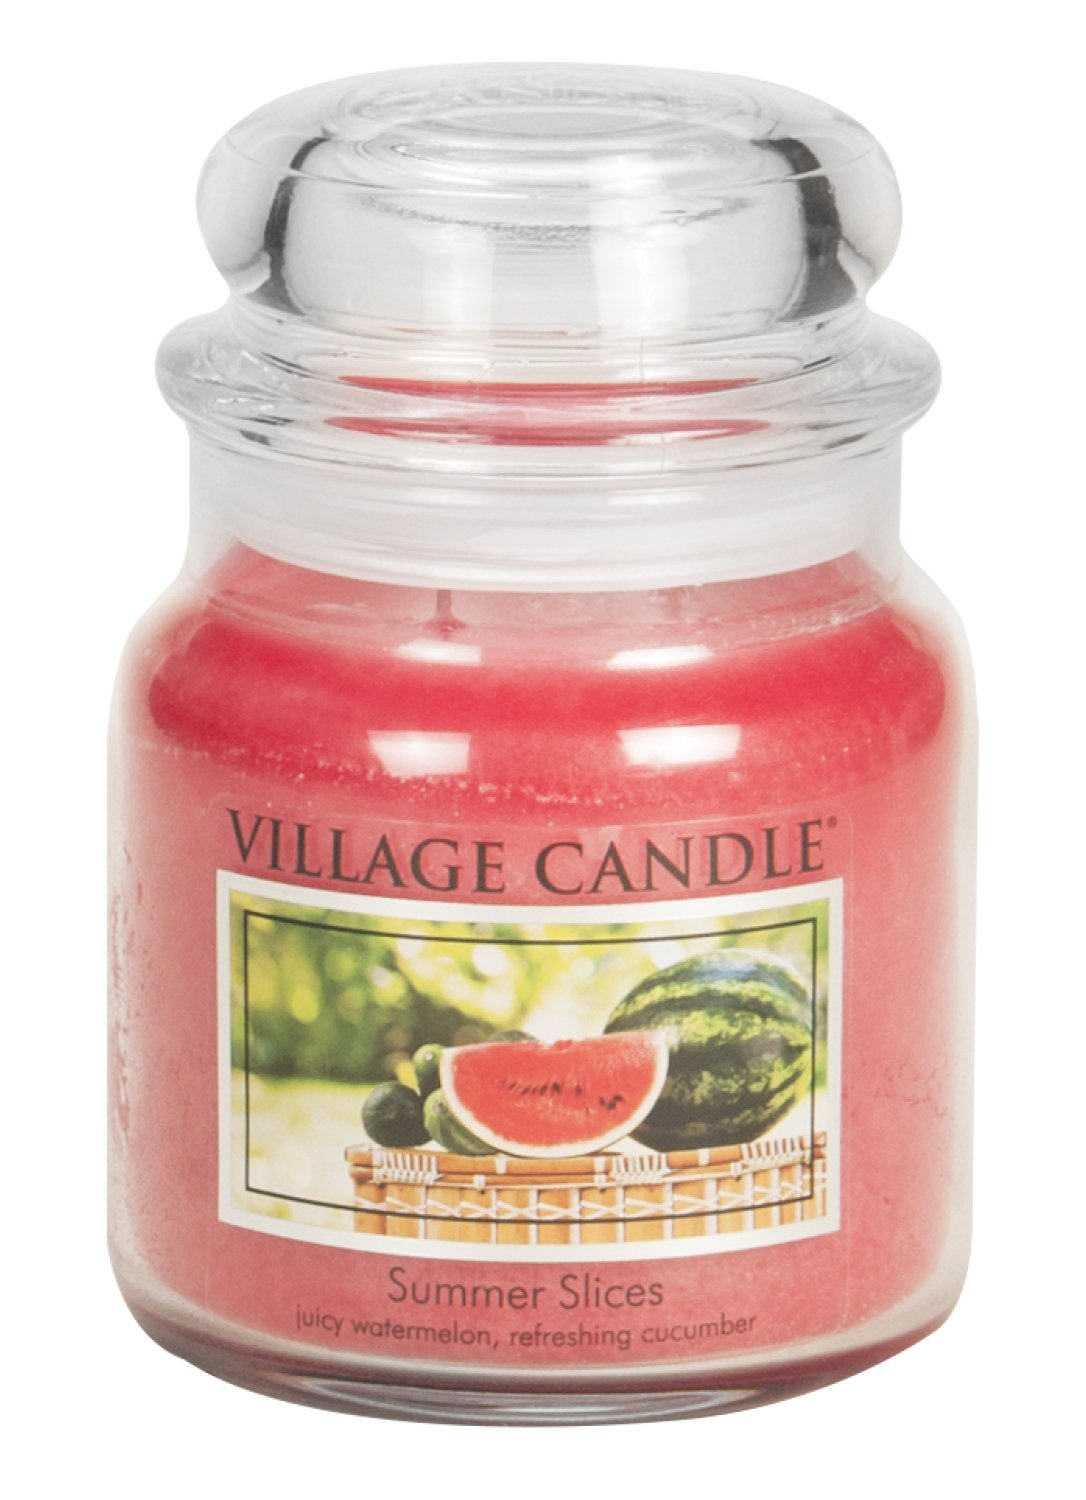 Village Candle Summer Slices 16 oz Glass Jar Scented Candle, Medium